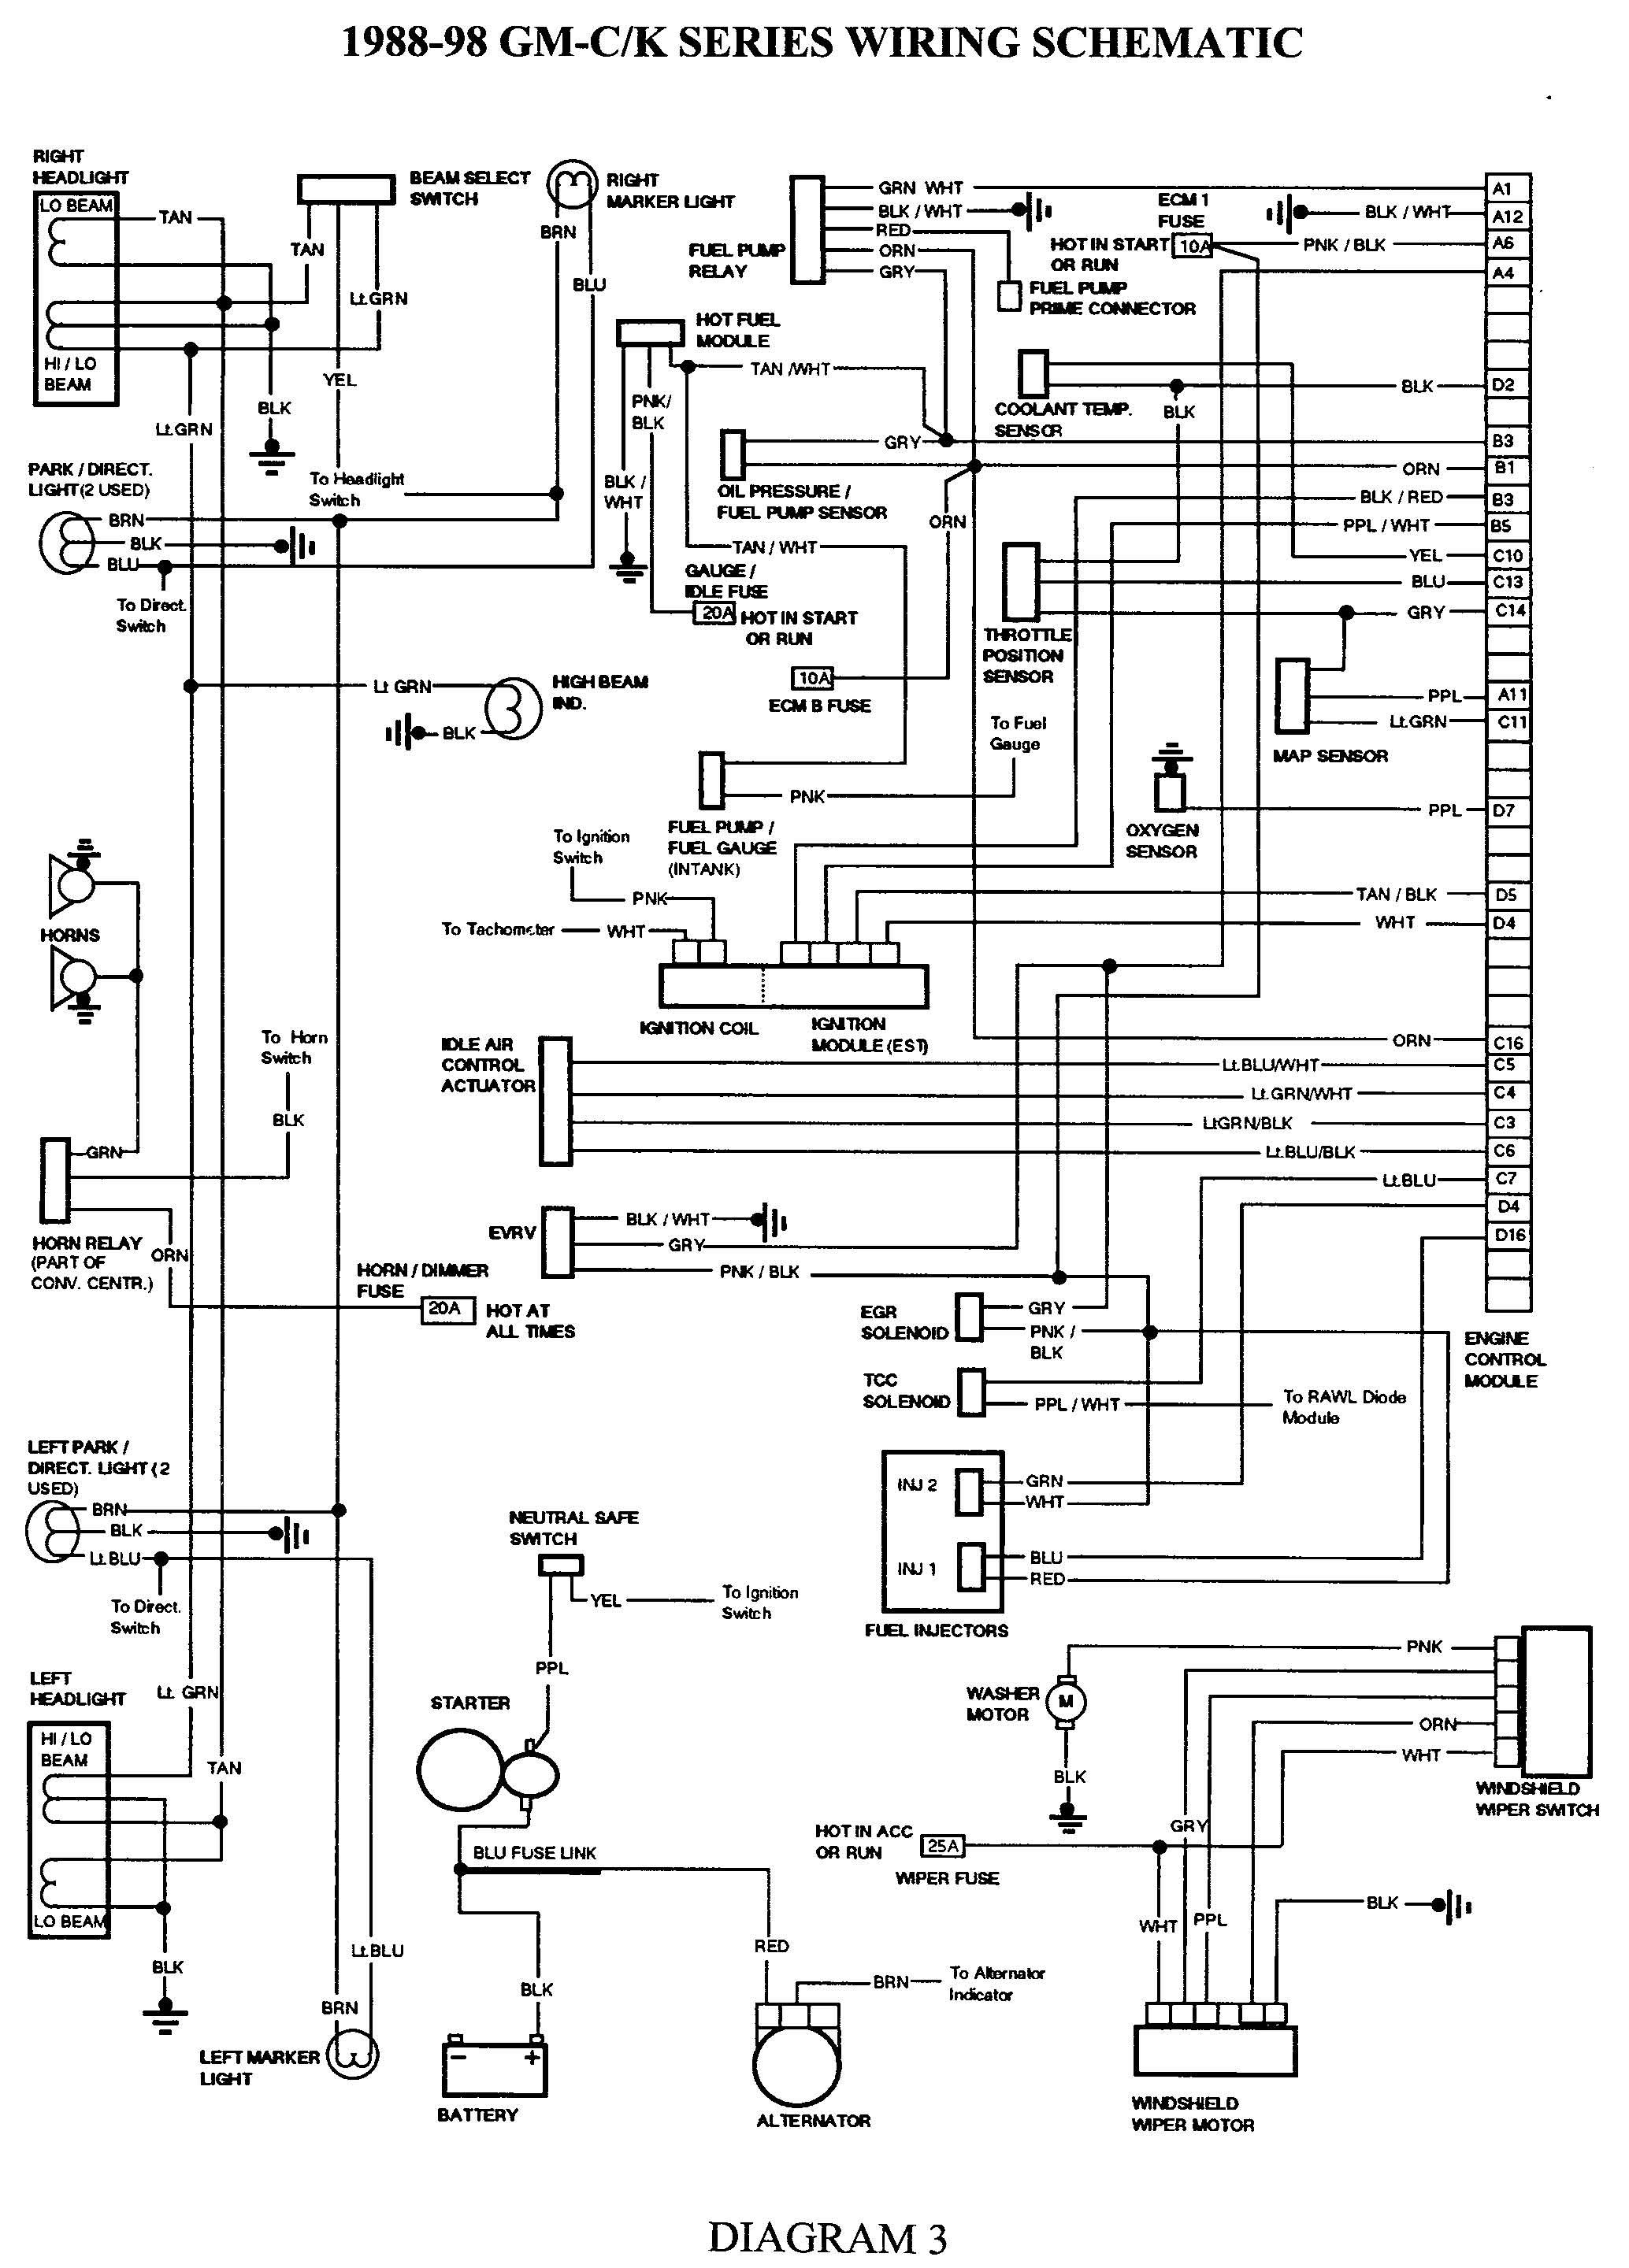 gmc truck wiring diagrams on gm wiring harness diagram 88 98 kc rh pinterest com 1988 gmc sierra radio wiring diagram 1988 gmc sierra radio wiring diagram